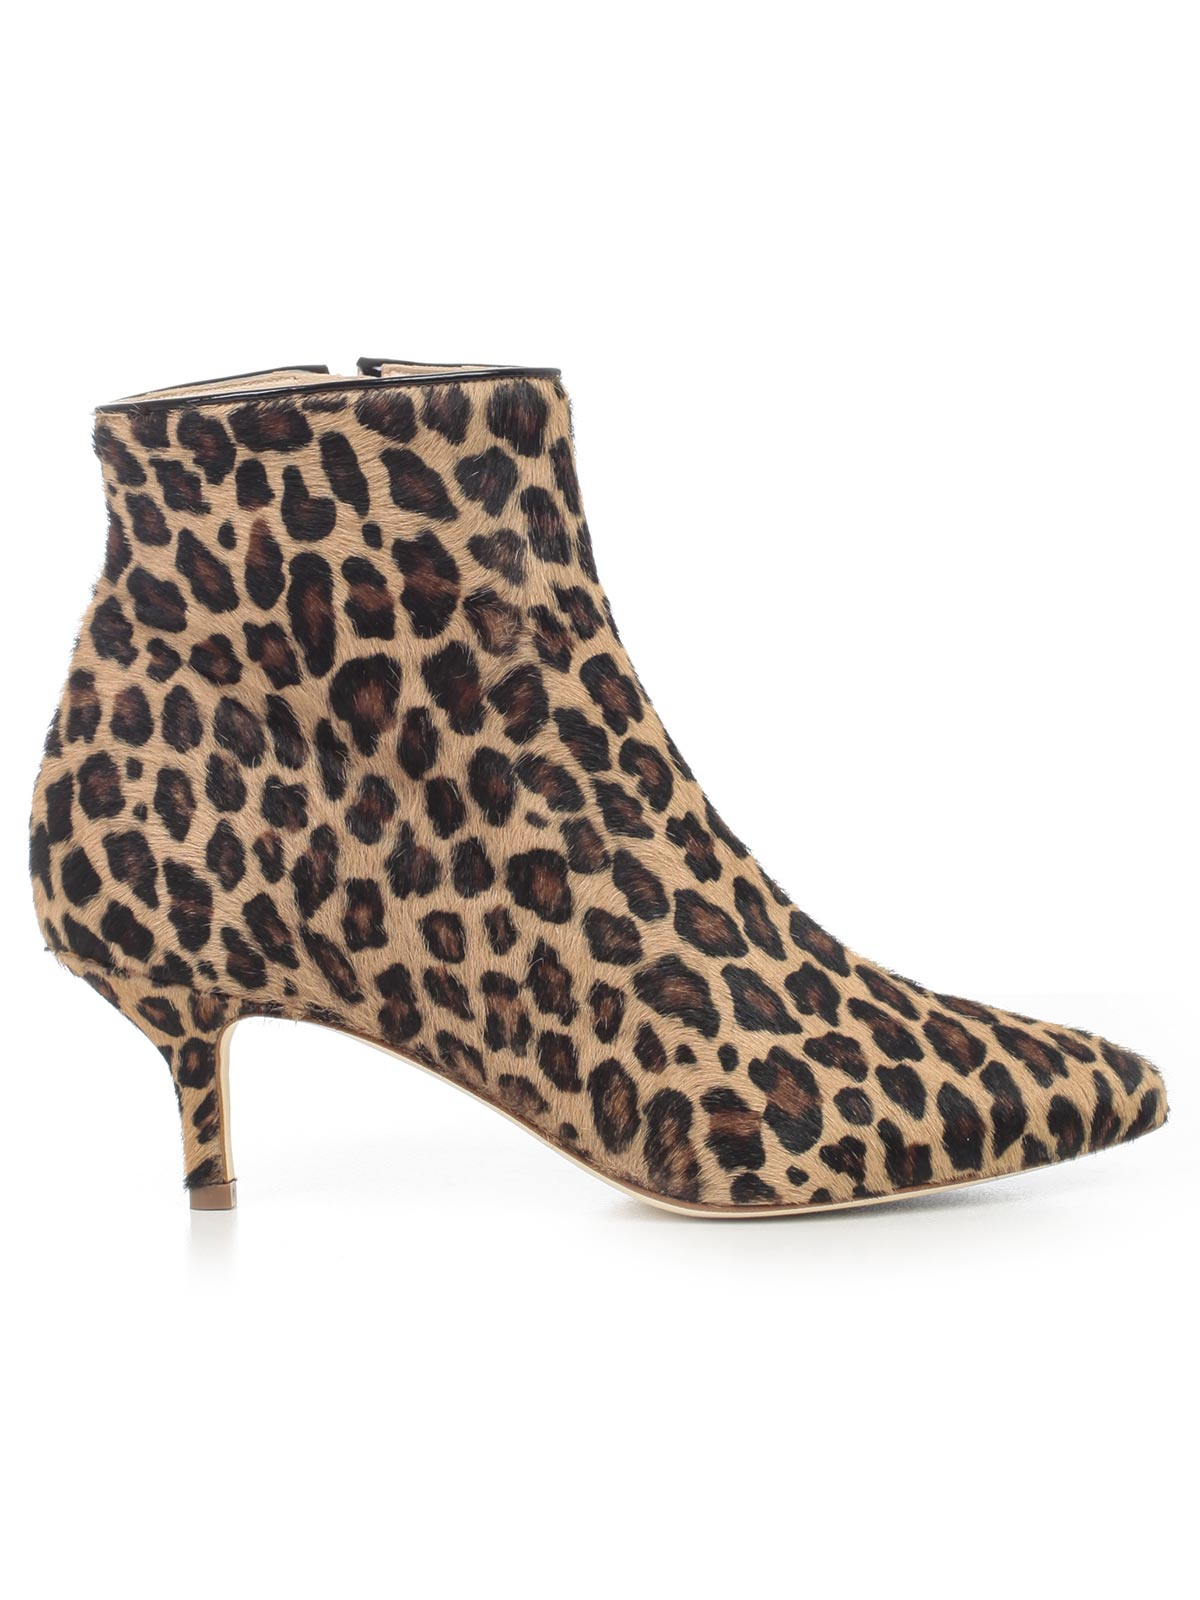 Picture of Polly Plume Boots